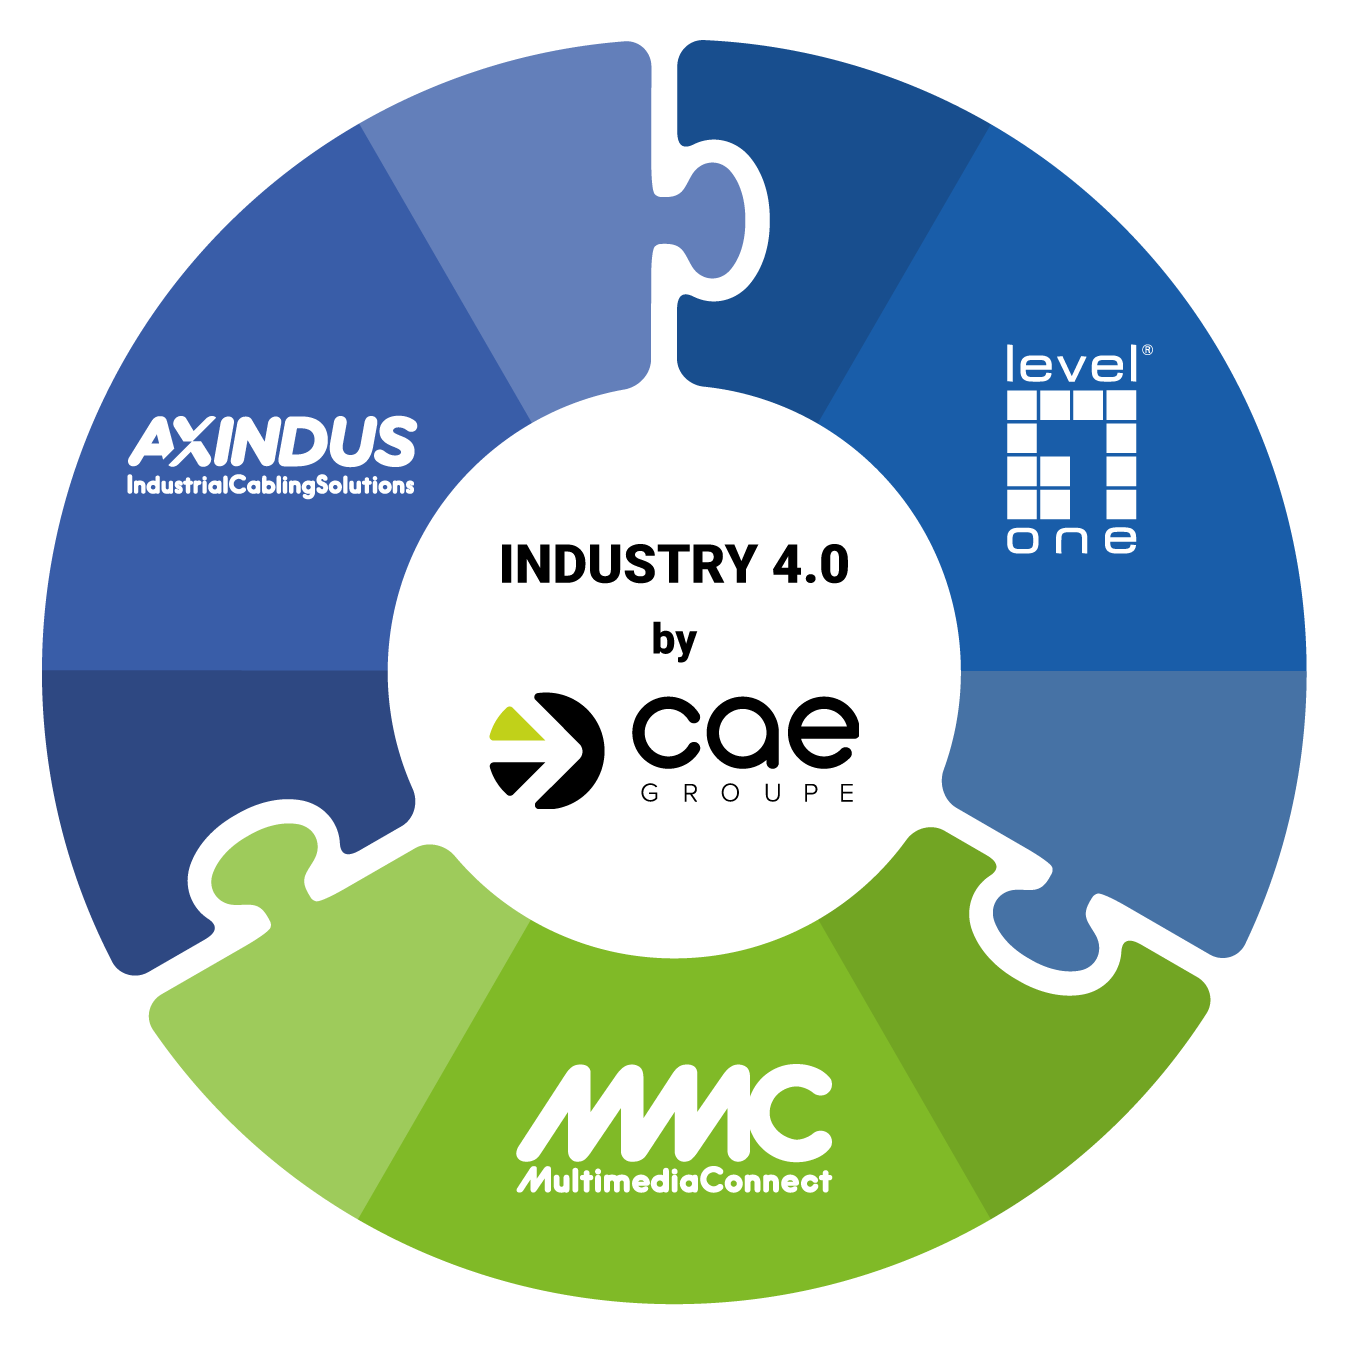 Axindus, MMC, Level one - industrie 4.0